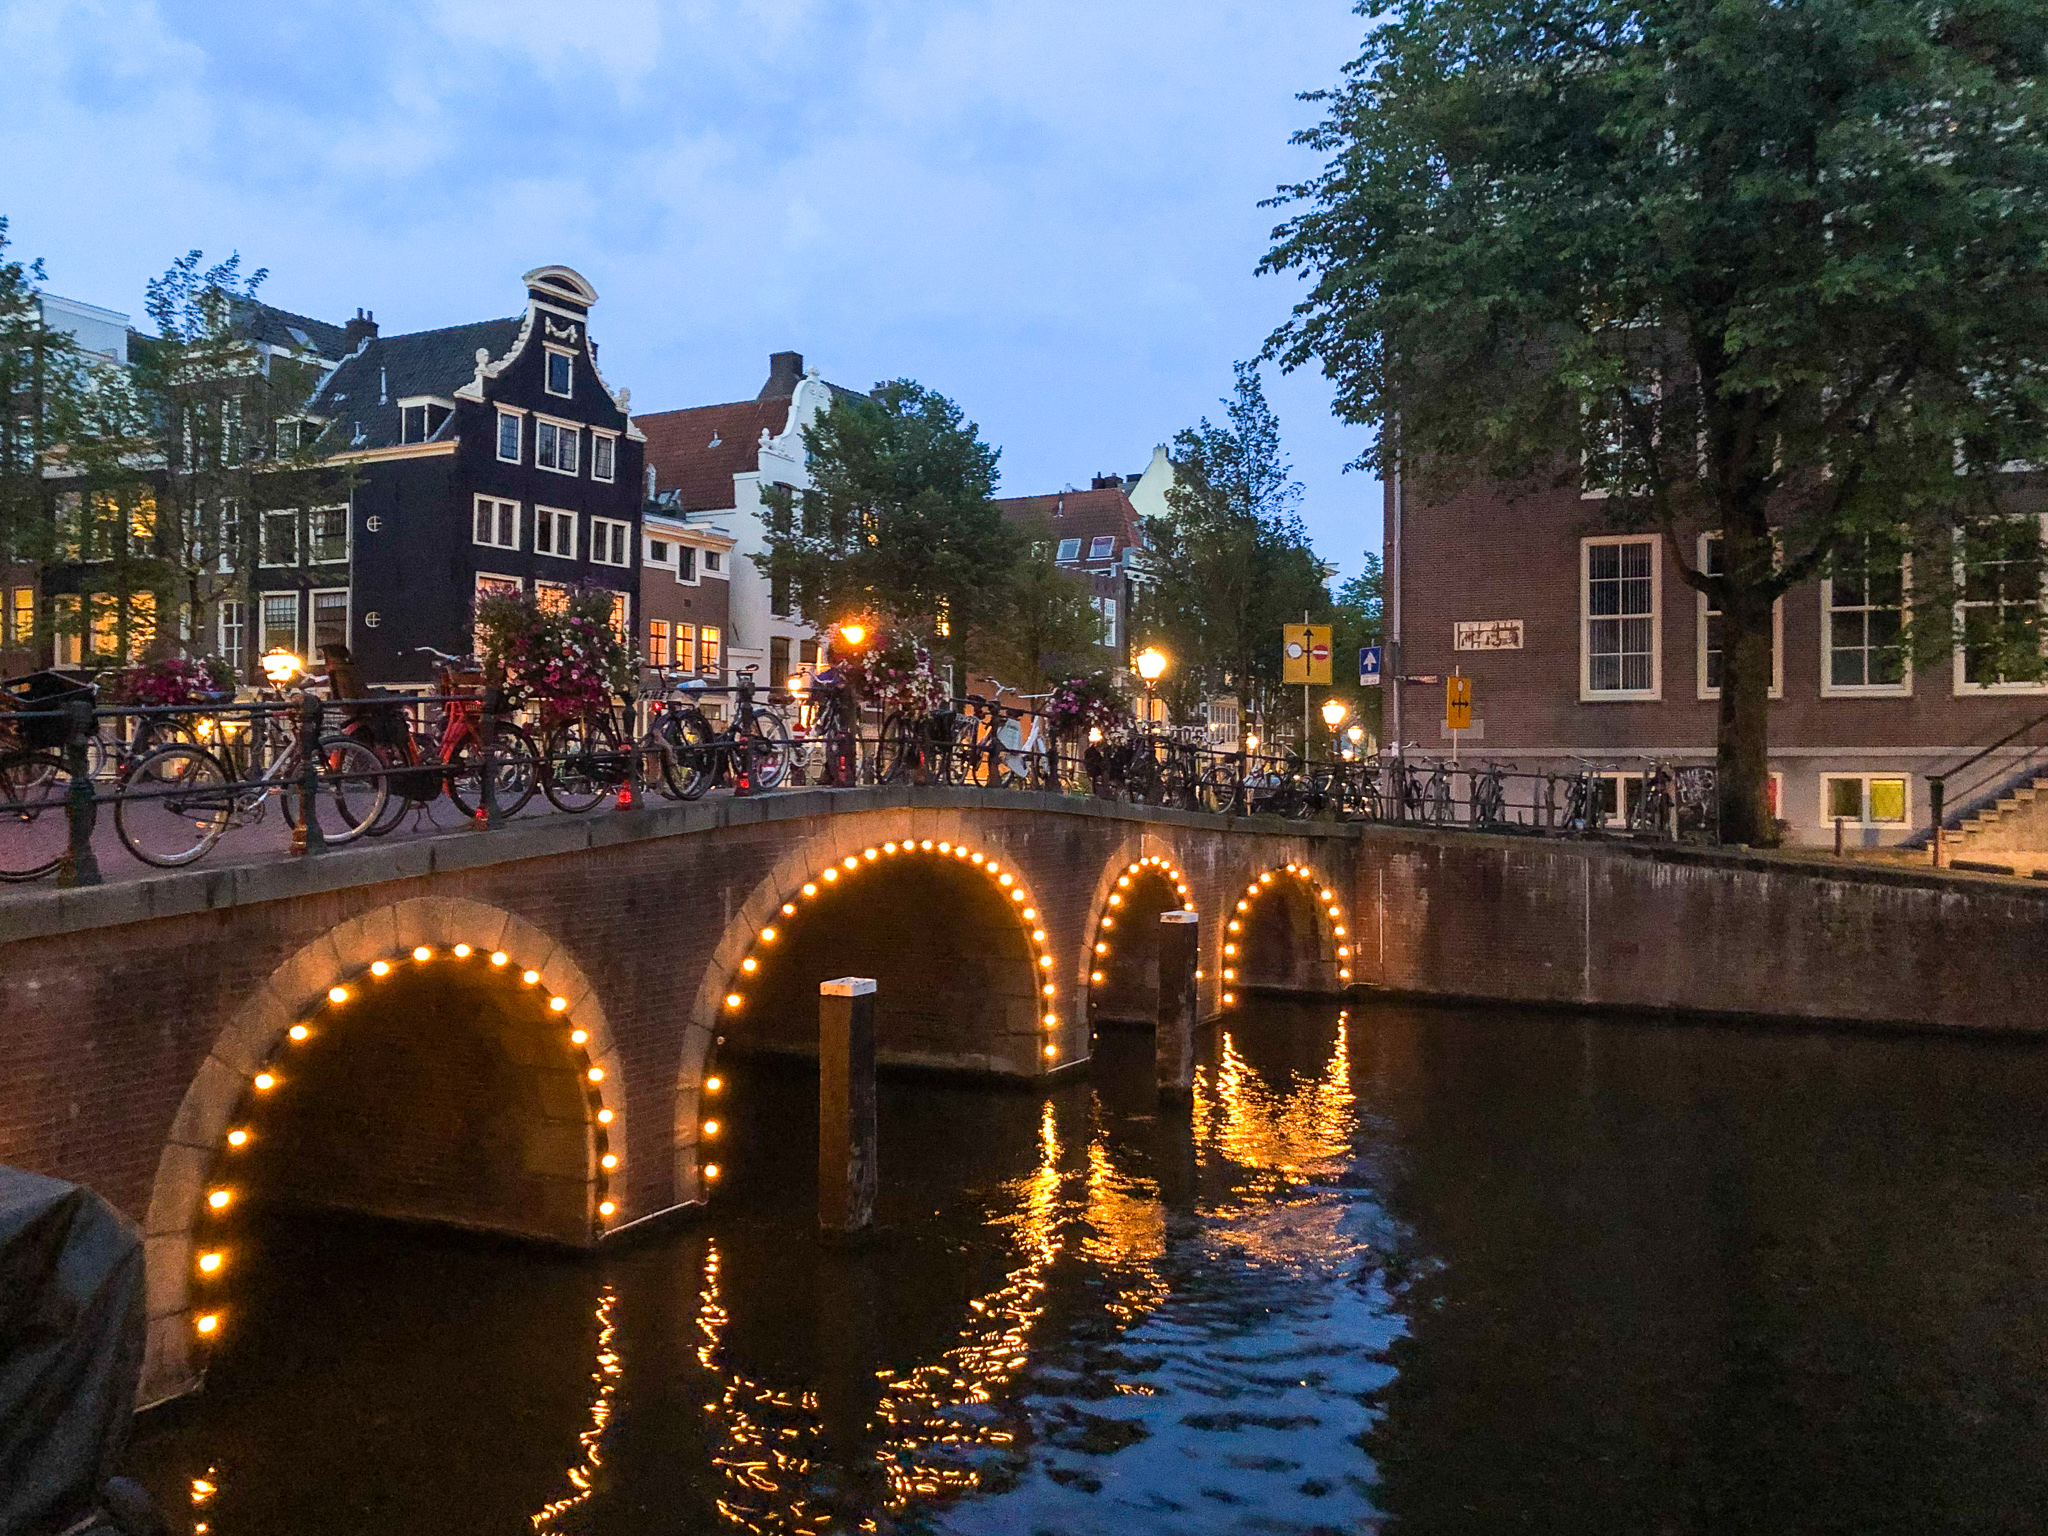 backpacking europe itinerary 2 weeks should include amsterdam